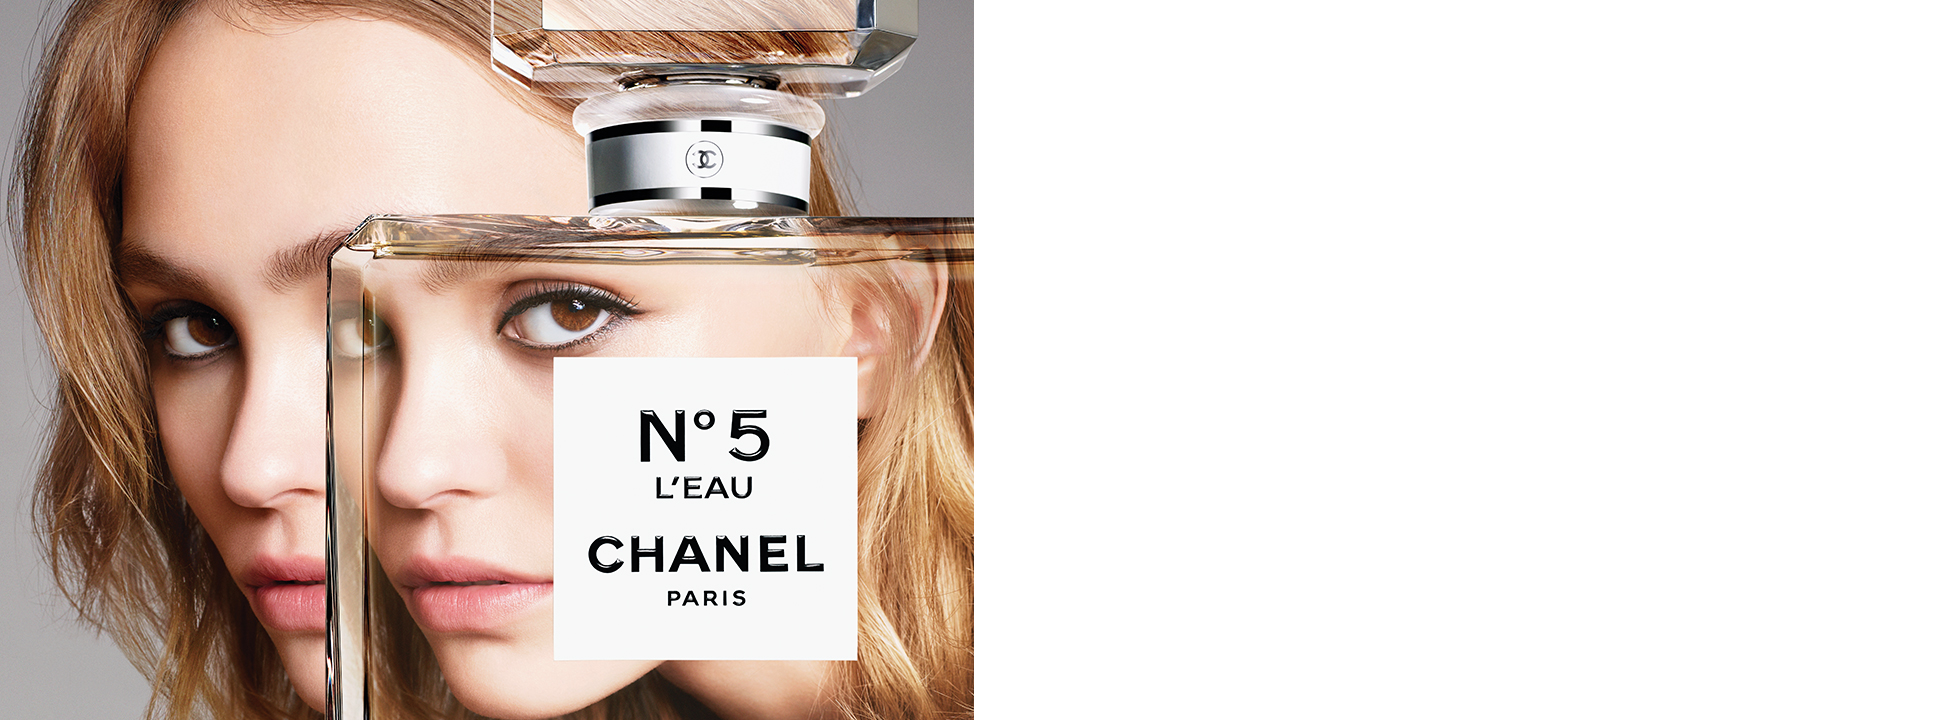 Chanel Fragrances & No.5 L'Eau